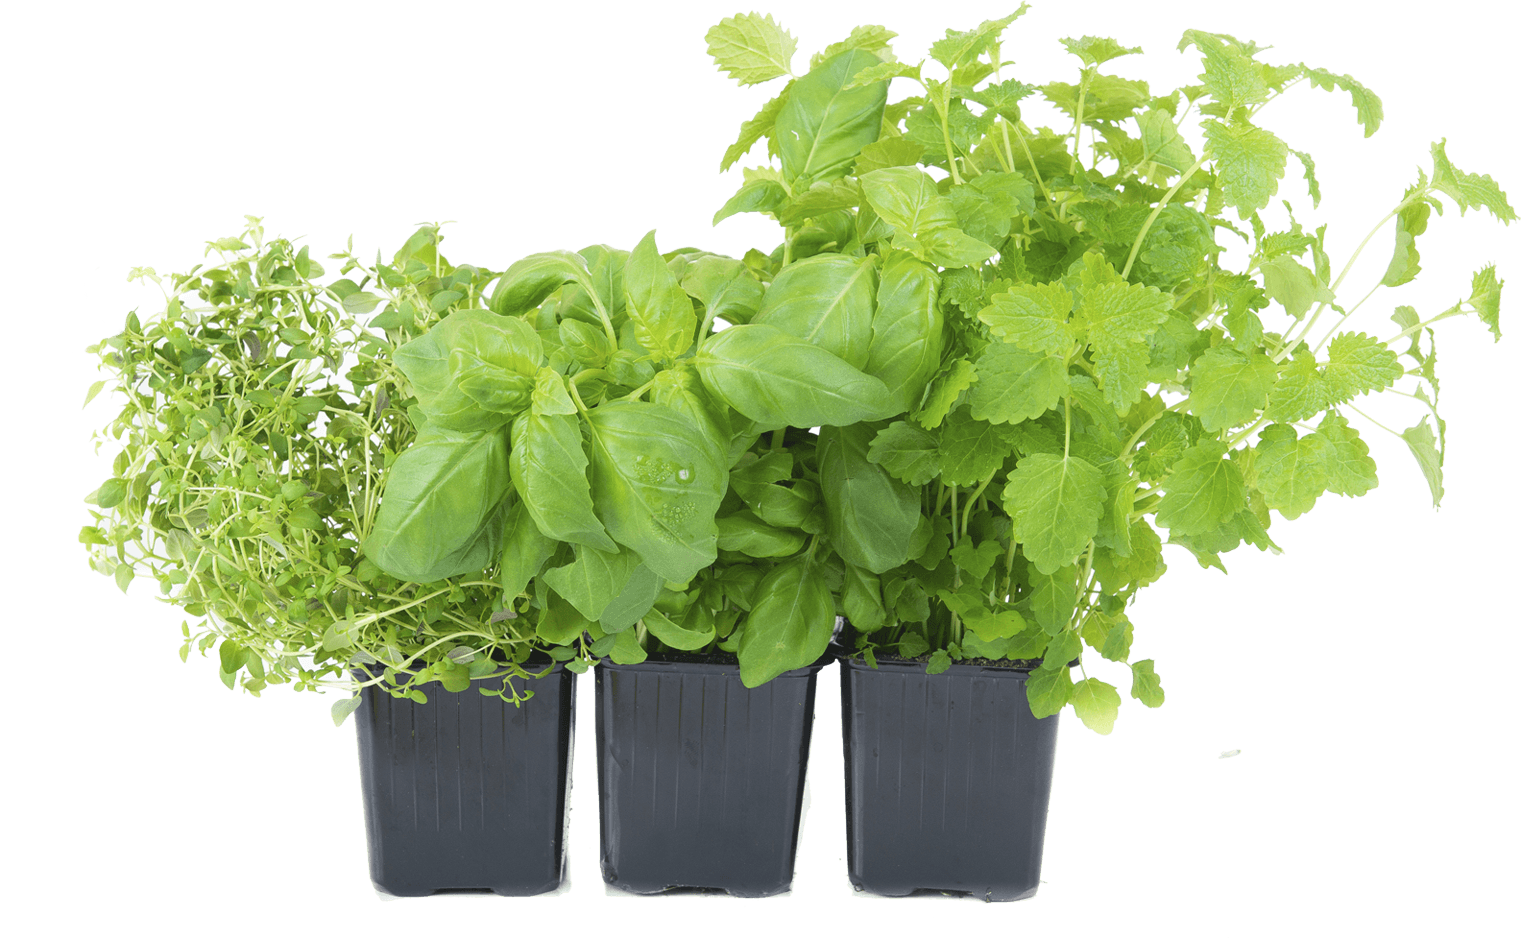 Growing Vegetables And Herbs In A Container Garden